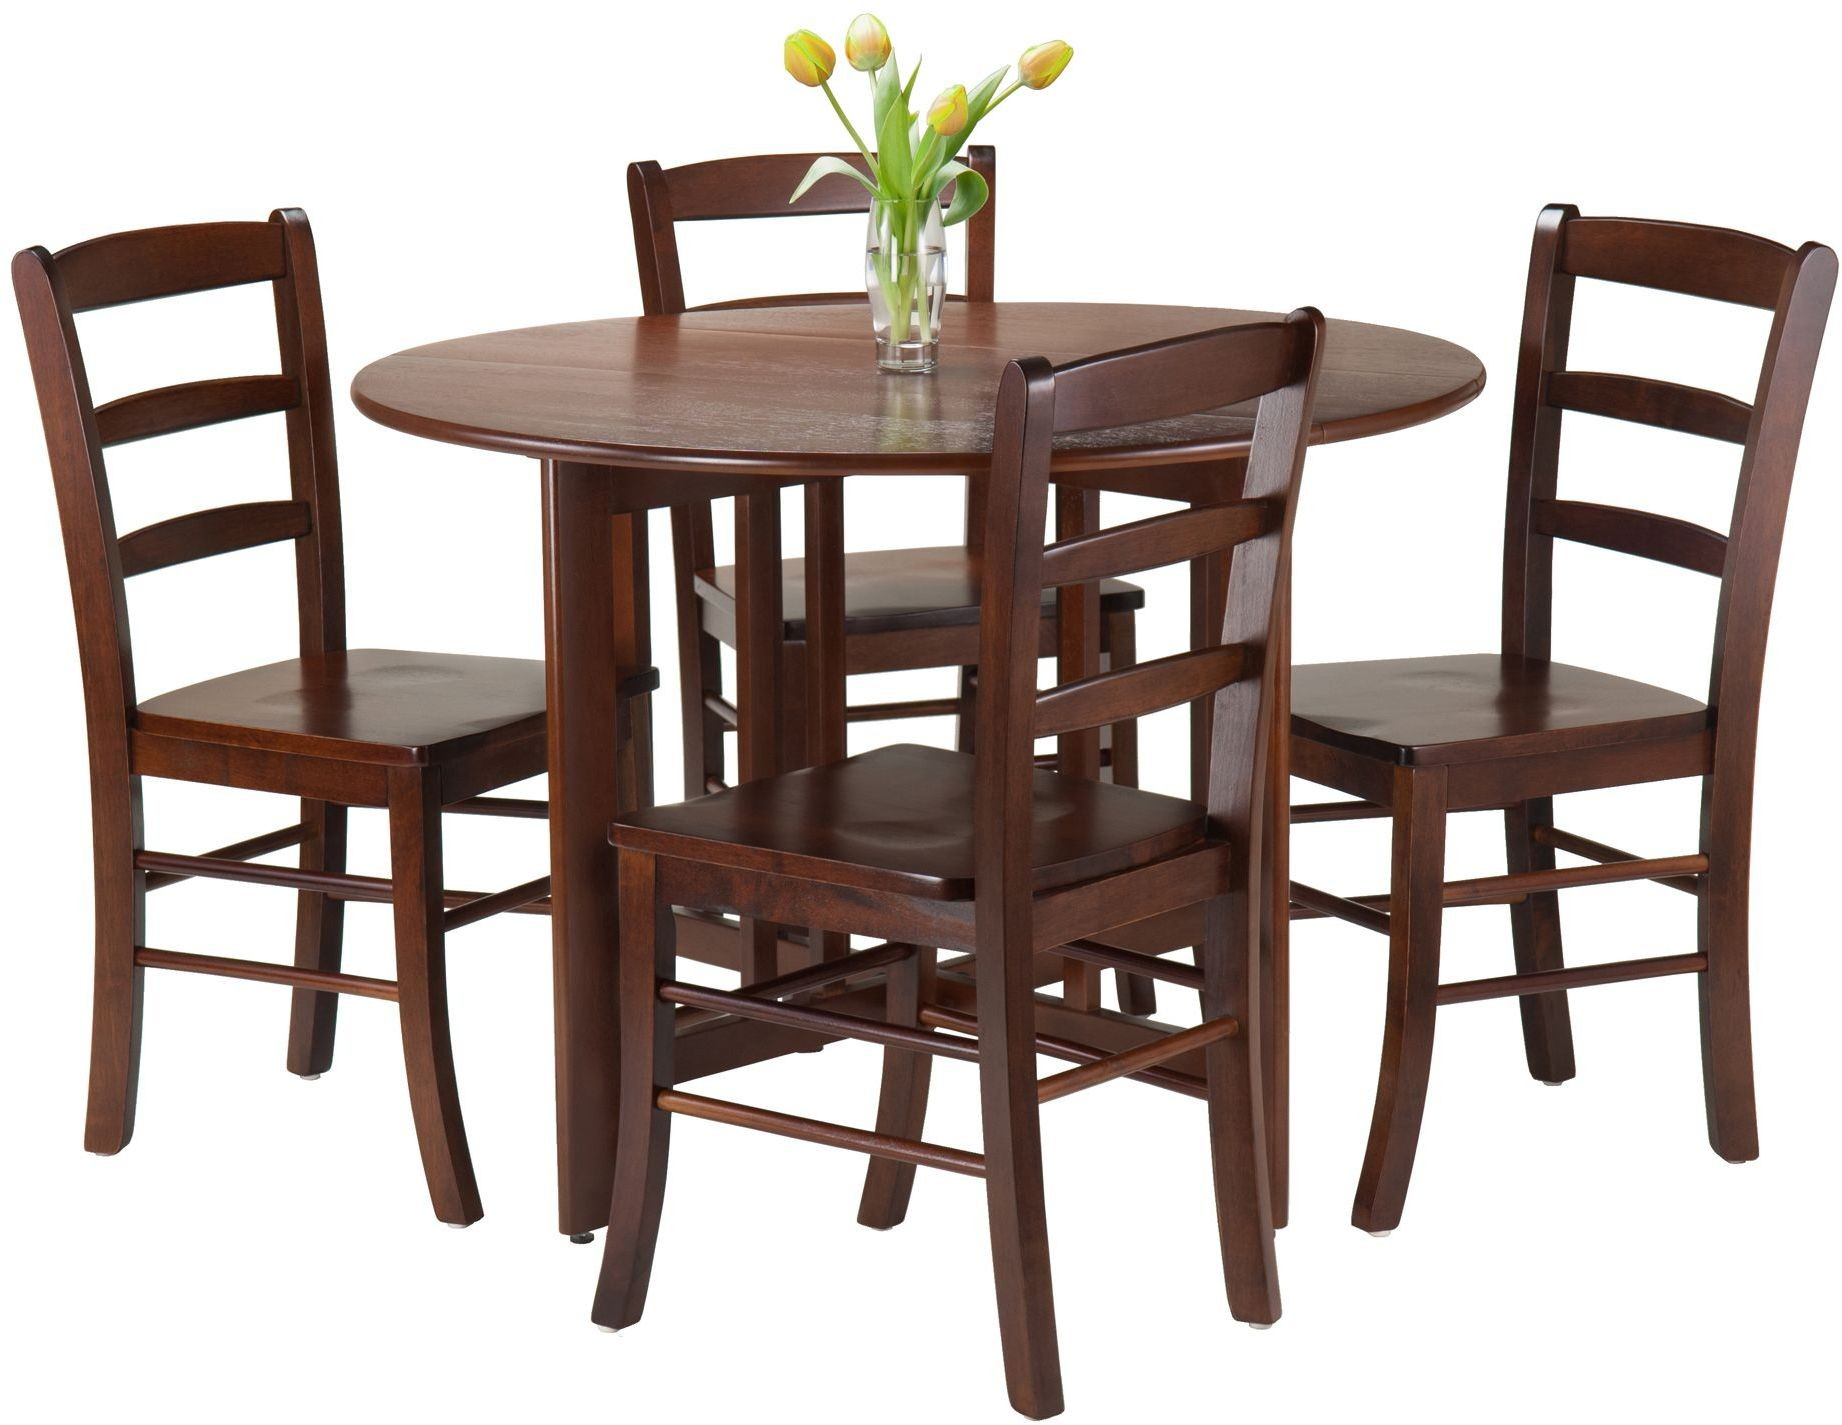 alamo walnut 5 piece round drop leaf dining set with 4 ladder back chairs from winsomewood. Black Bedroom Furniture Sets. Home Design Ideas